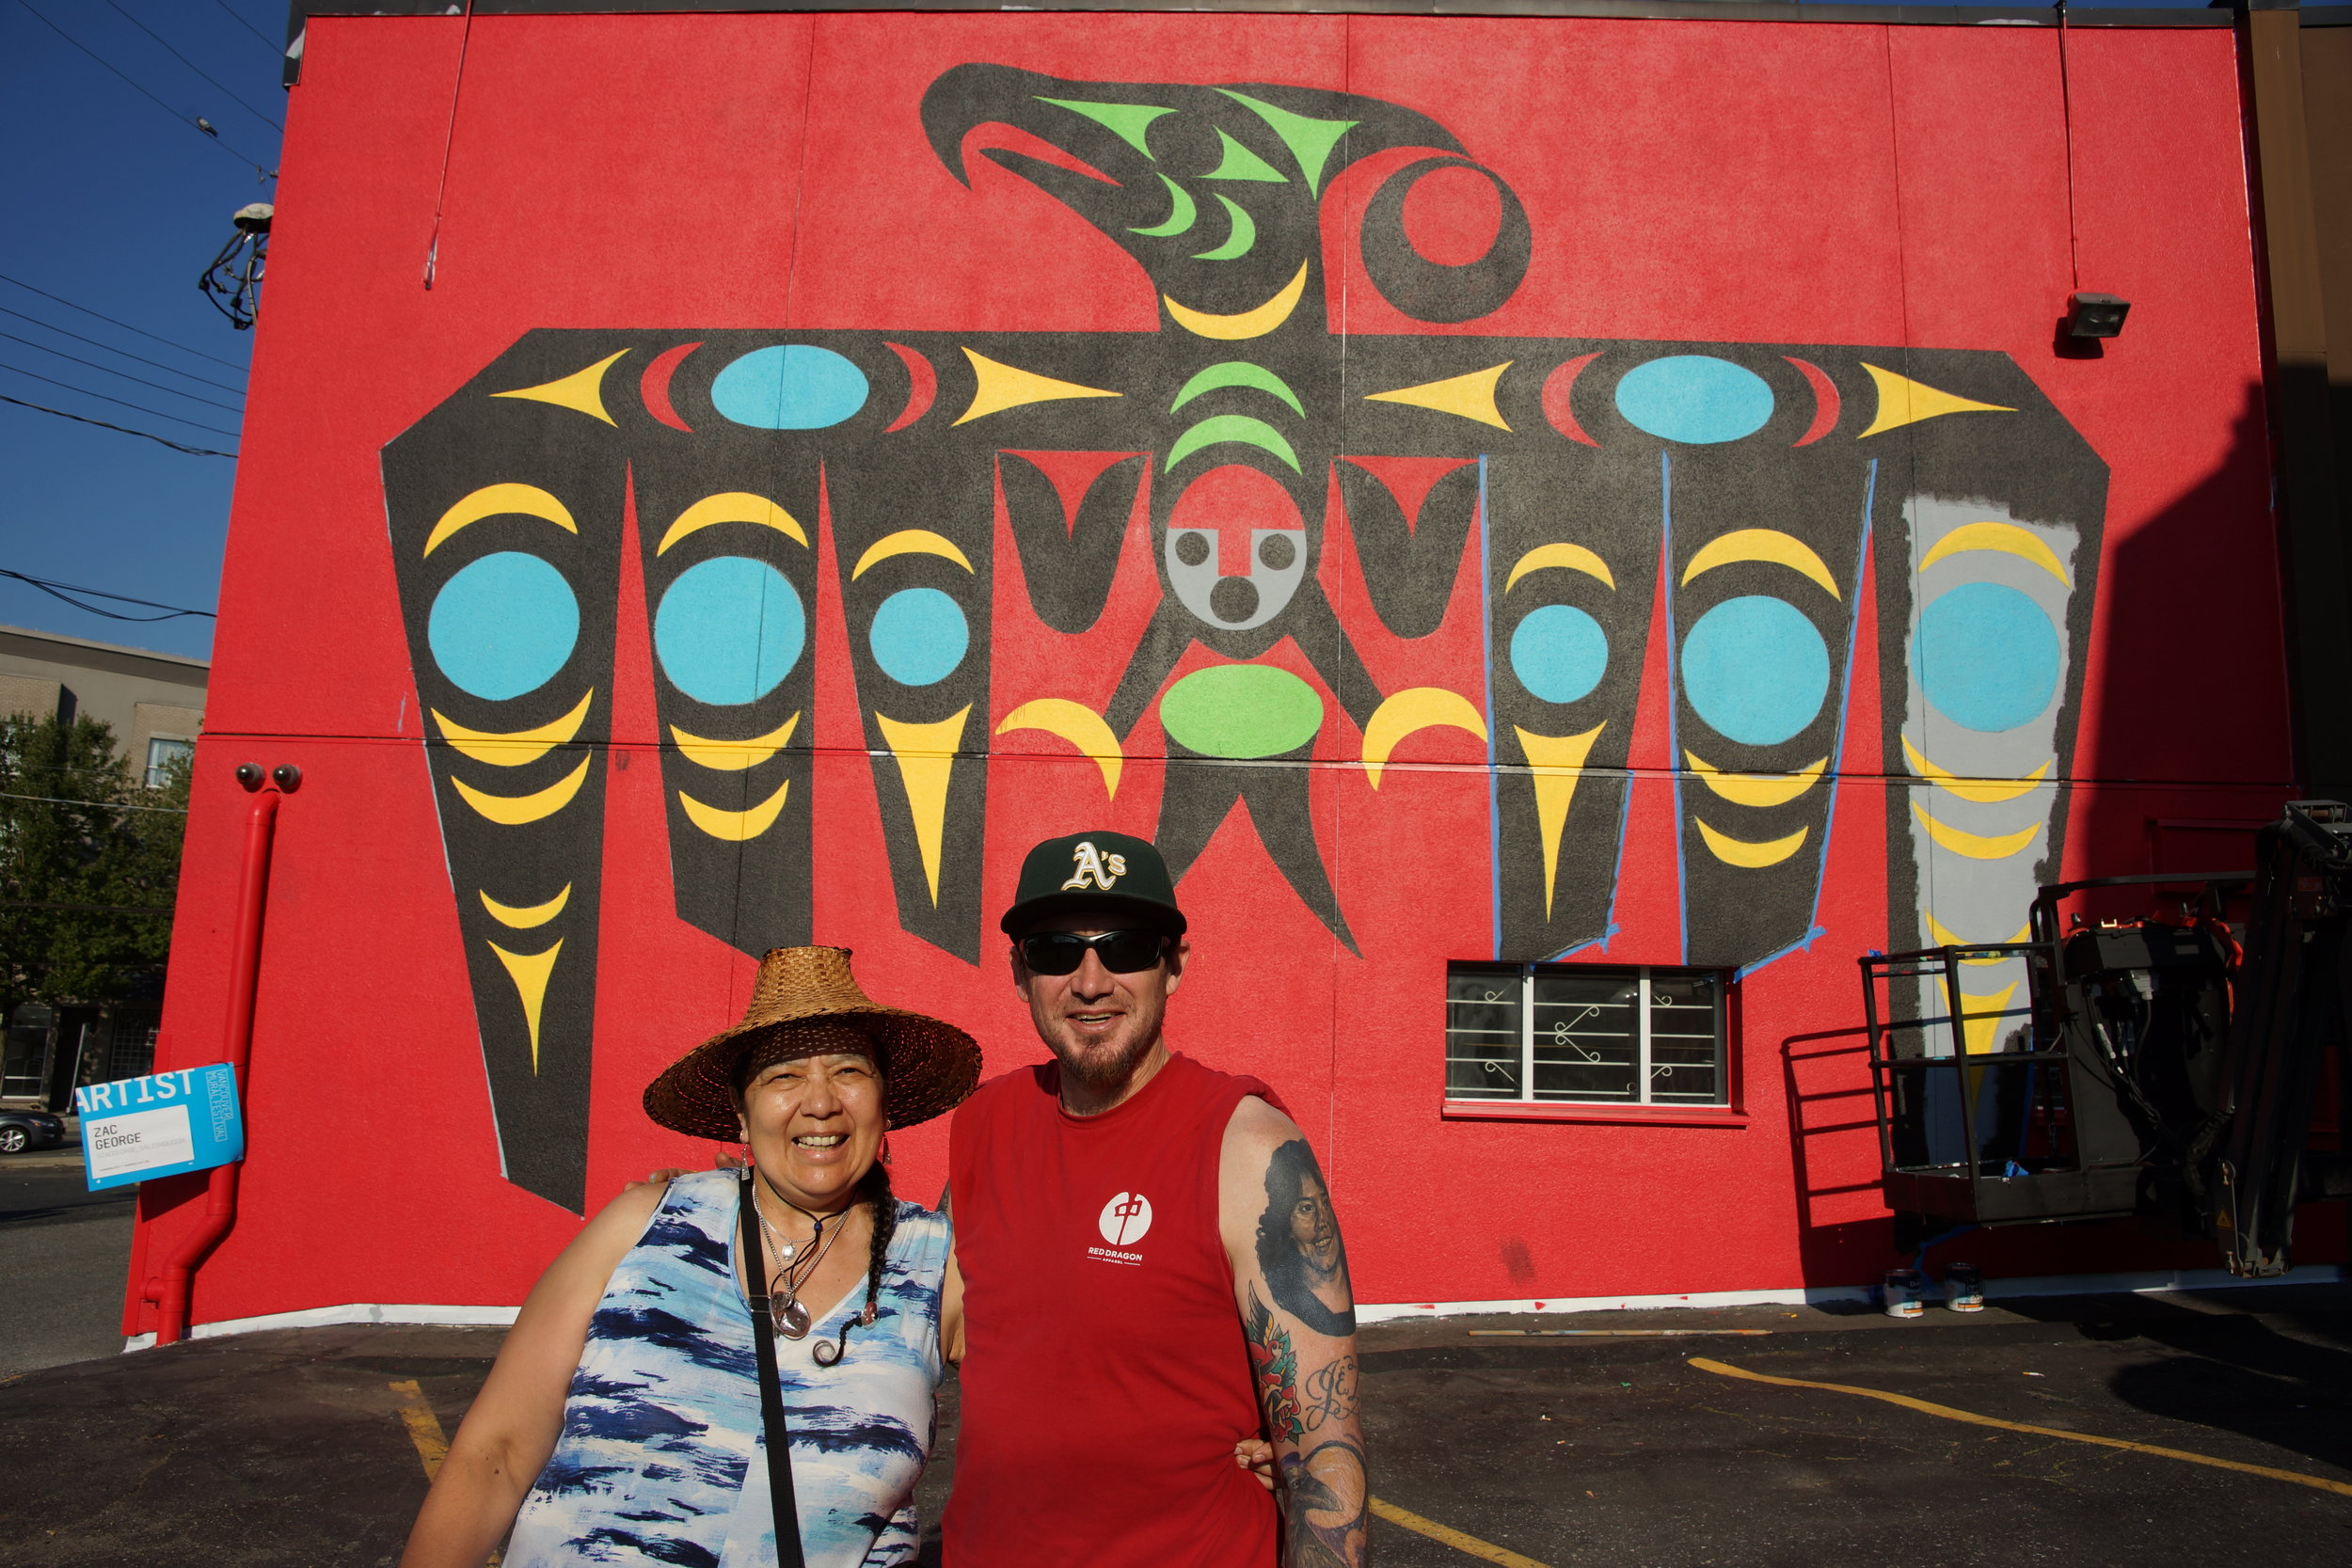 While painting his mural, Zac ran into his Auntie who was participating in a VMF x SFU public talk just down the street. We happened to have a camera there and caught his auntie's proud moment.